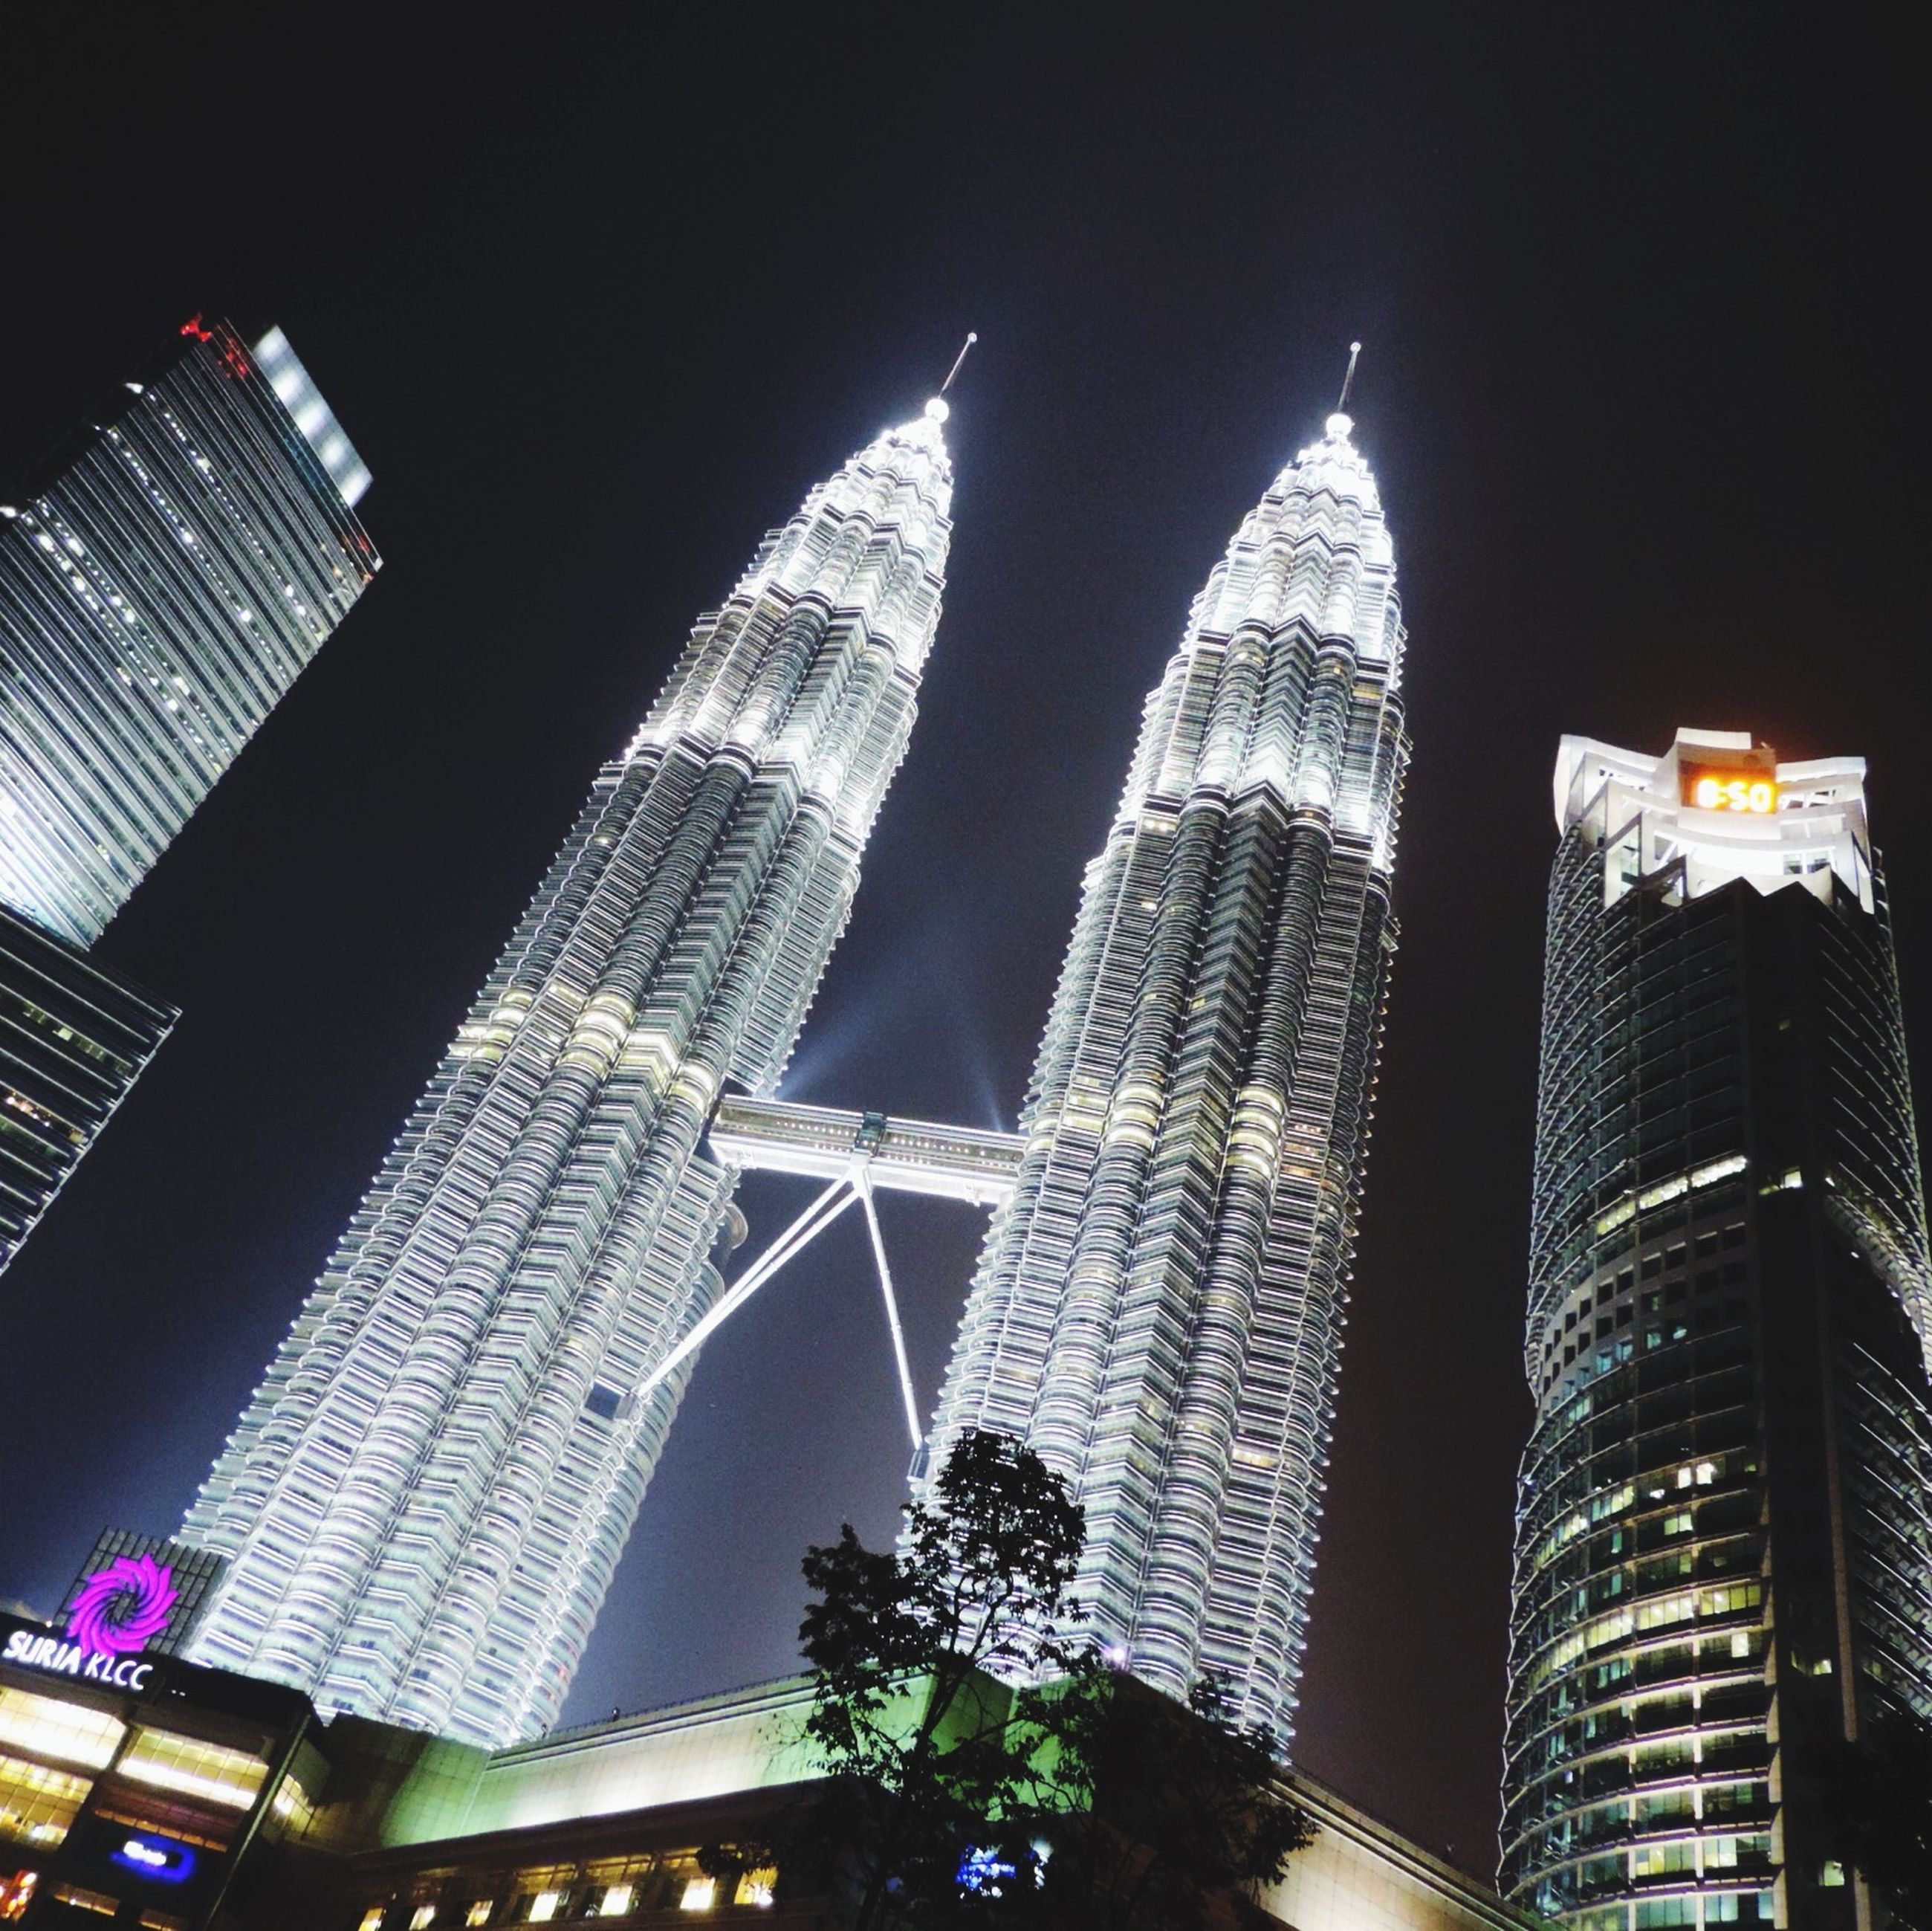 architecture, built structure, building exterior, skyscraper, city, tall - high, tower, modern, famous place, international landmark, capital cities, low angle view, office building, travel destinations, tourism, night, travel, financial district, illuminated, cityscape